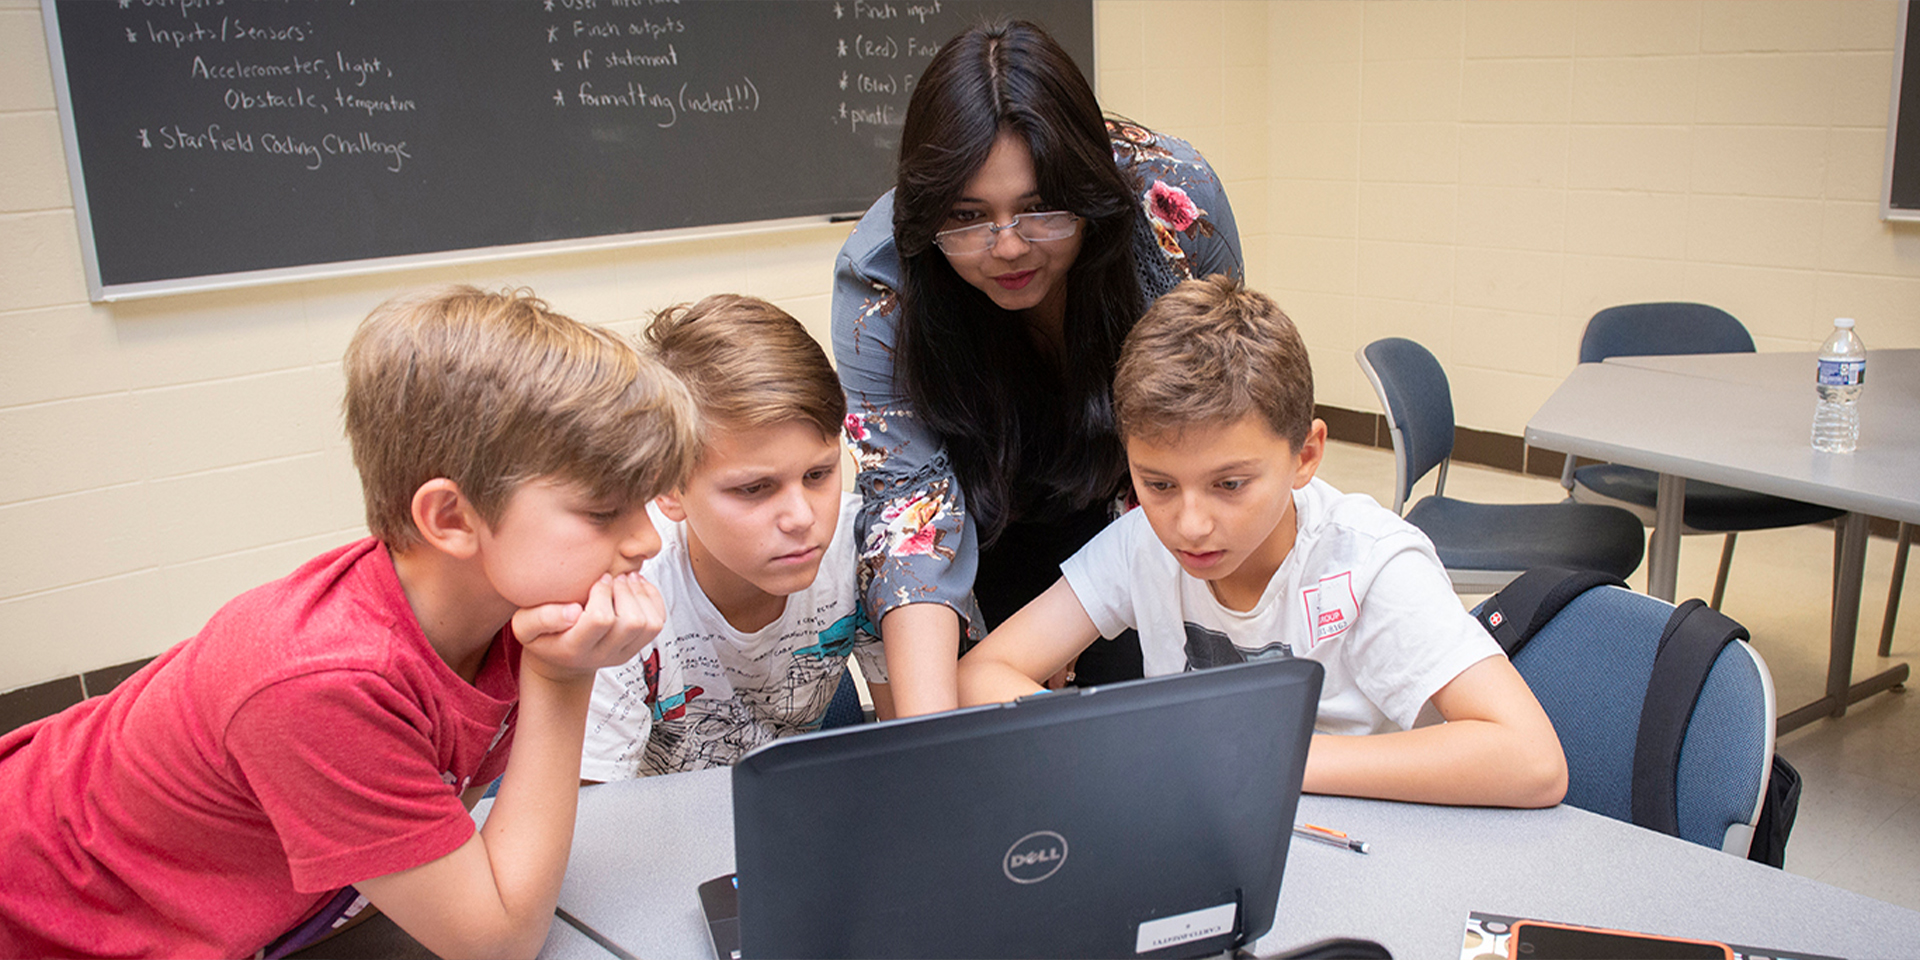 Teacher points to laptop screen as she helps three students with an assignment